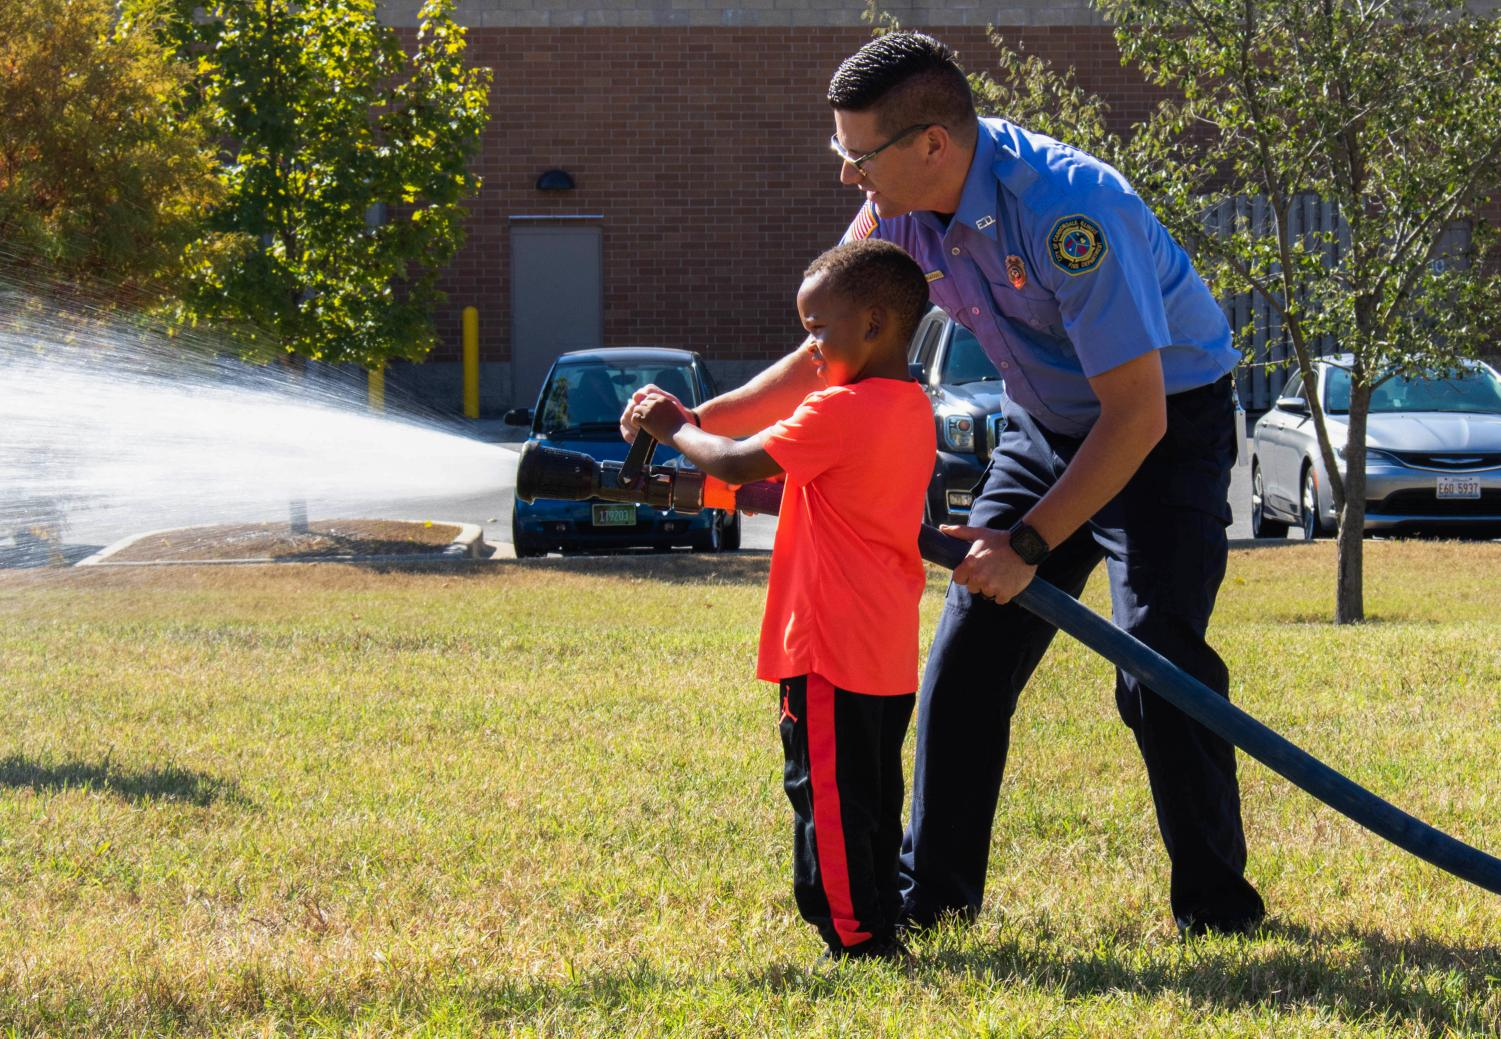 Four-year-old Jeremiah Davis uses the fire hose in one of the many activites hosted by the Carbondale Fire Department at their open house on Saturday, October 5th to kick off National Fire Prevention Week.